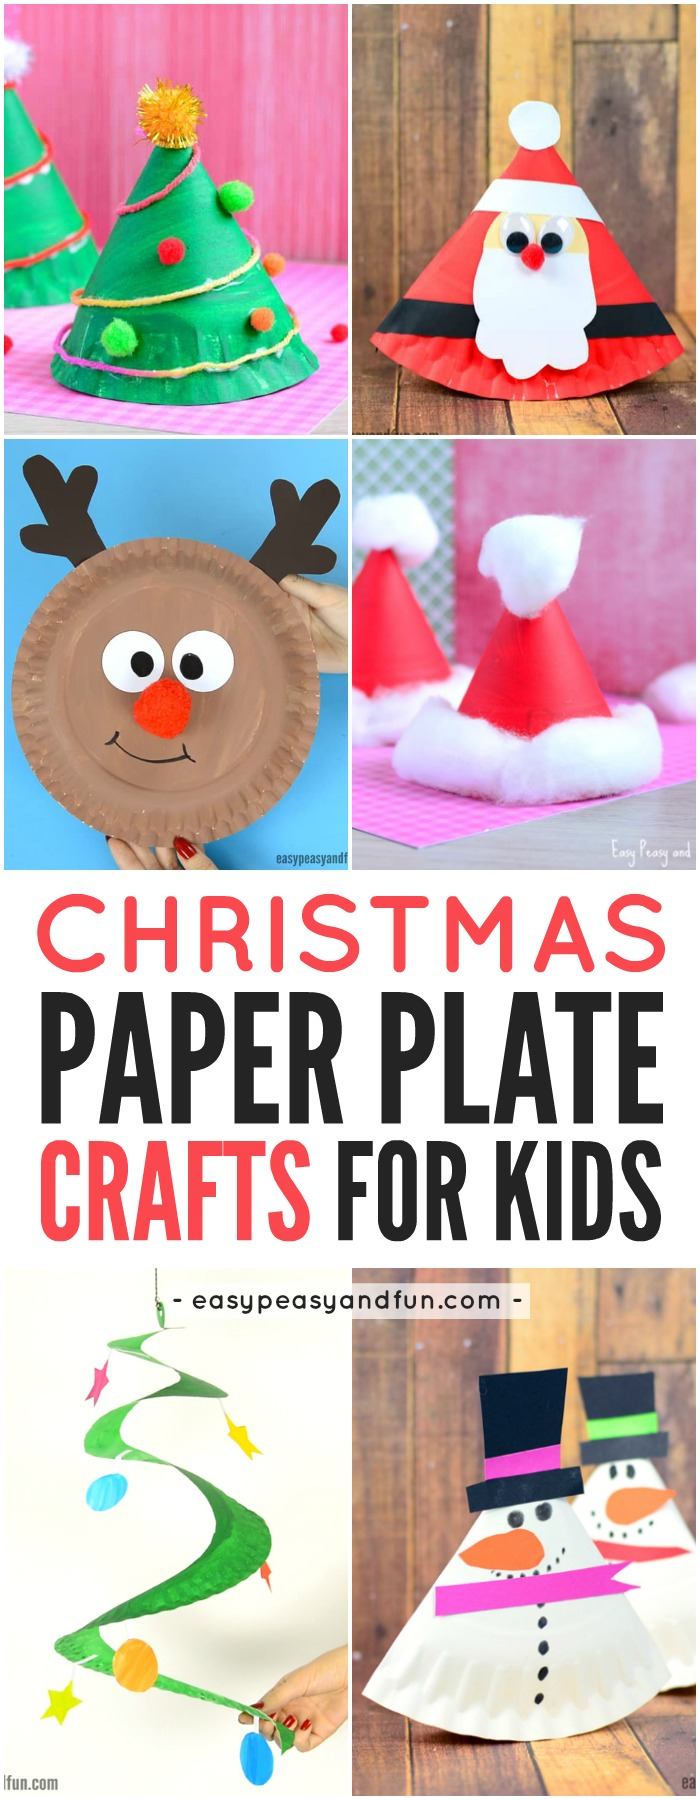 Paper Plate Christmas Crafts for Kids to Make